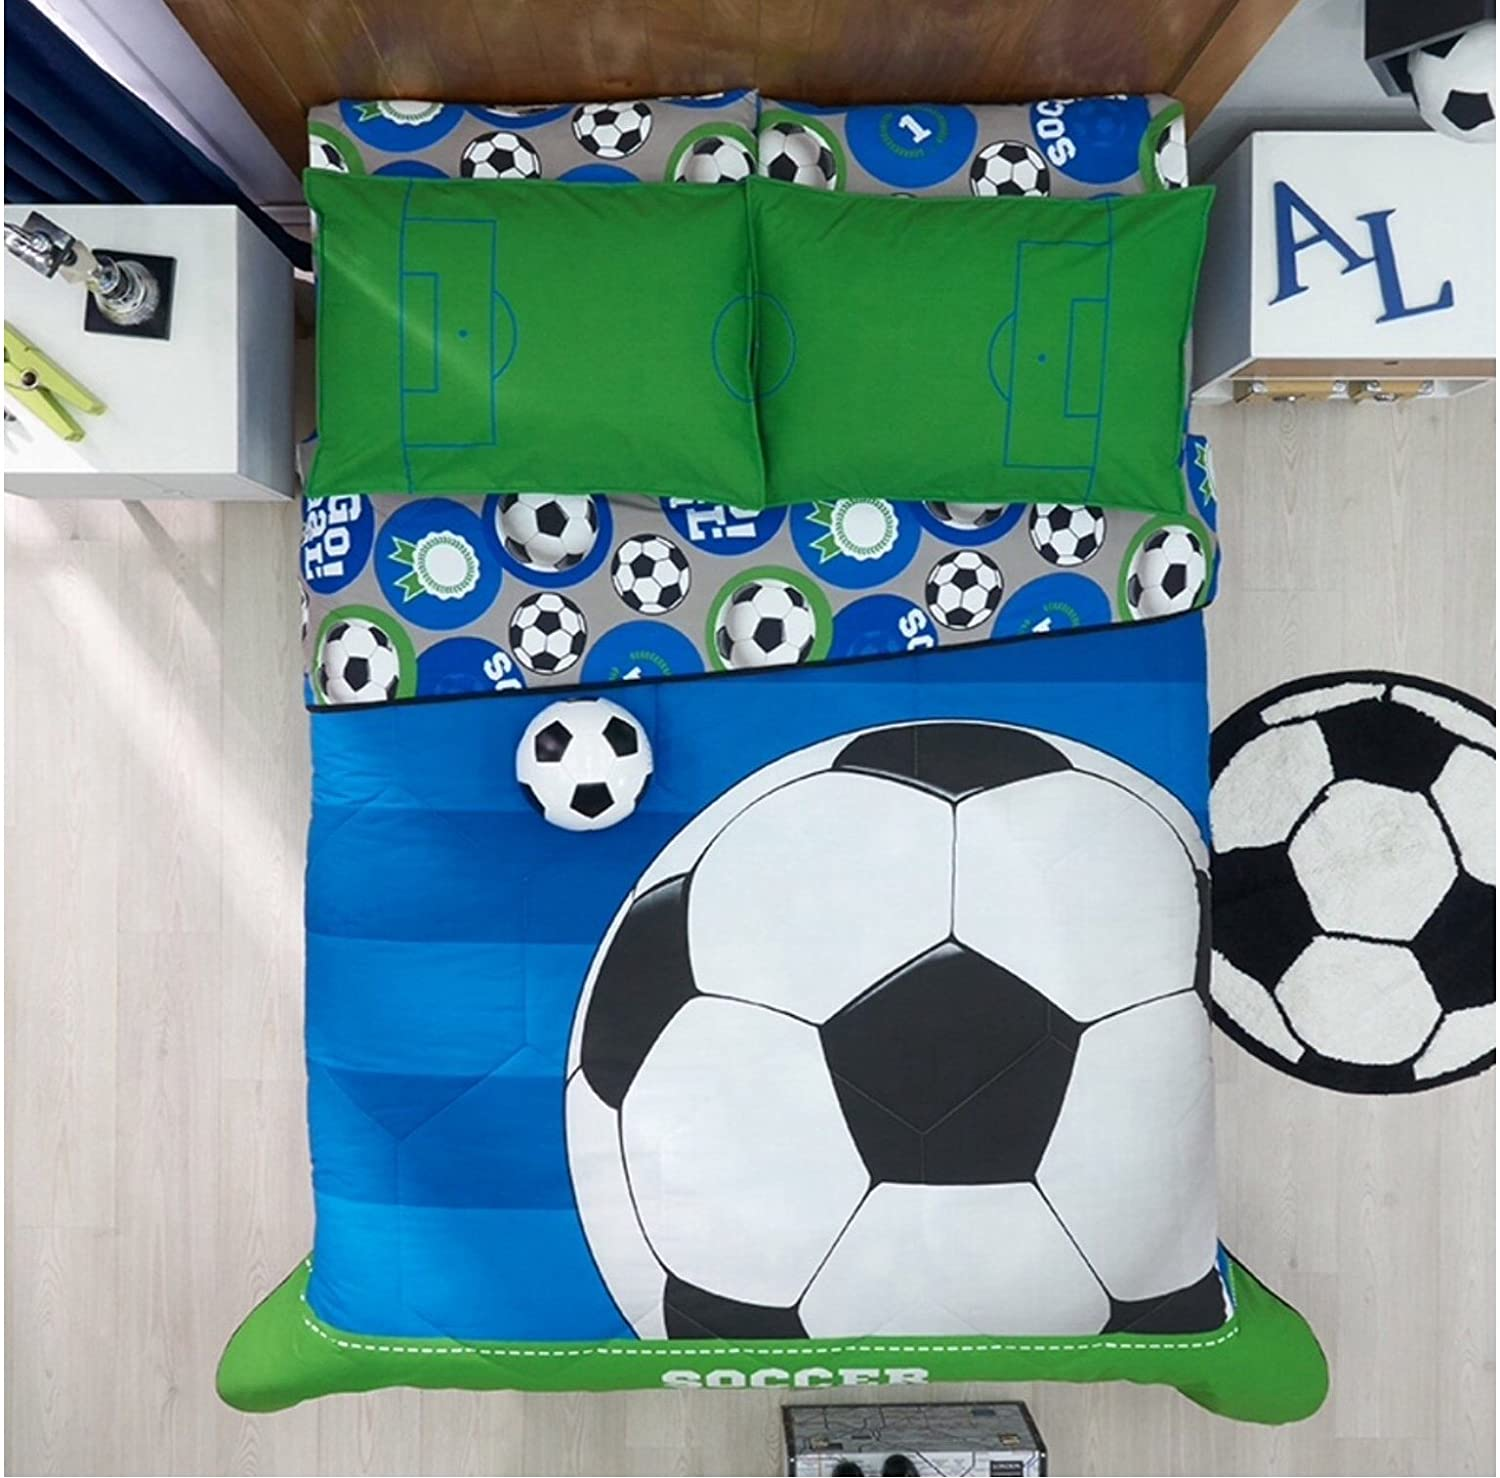 cover duvet set sale for size factory bed product printed bedding soccer include design pink queen pattern linens bedspread new pillowcase